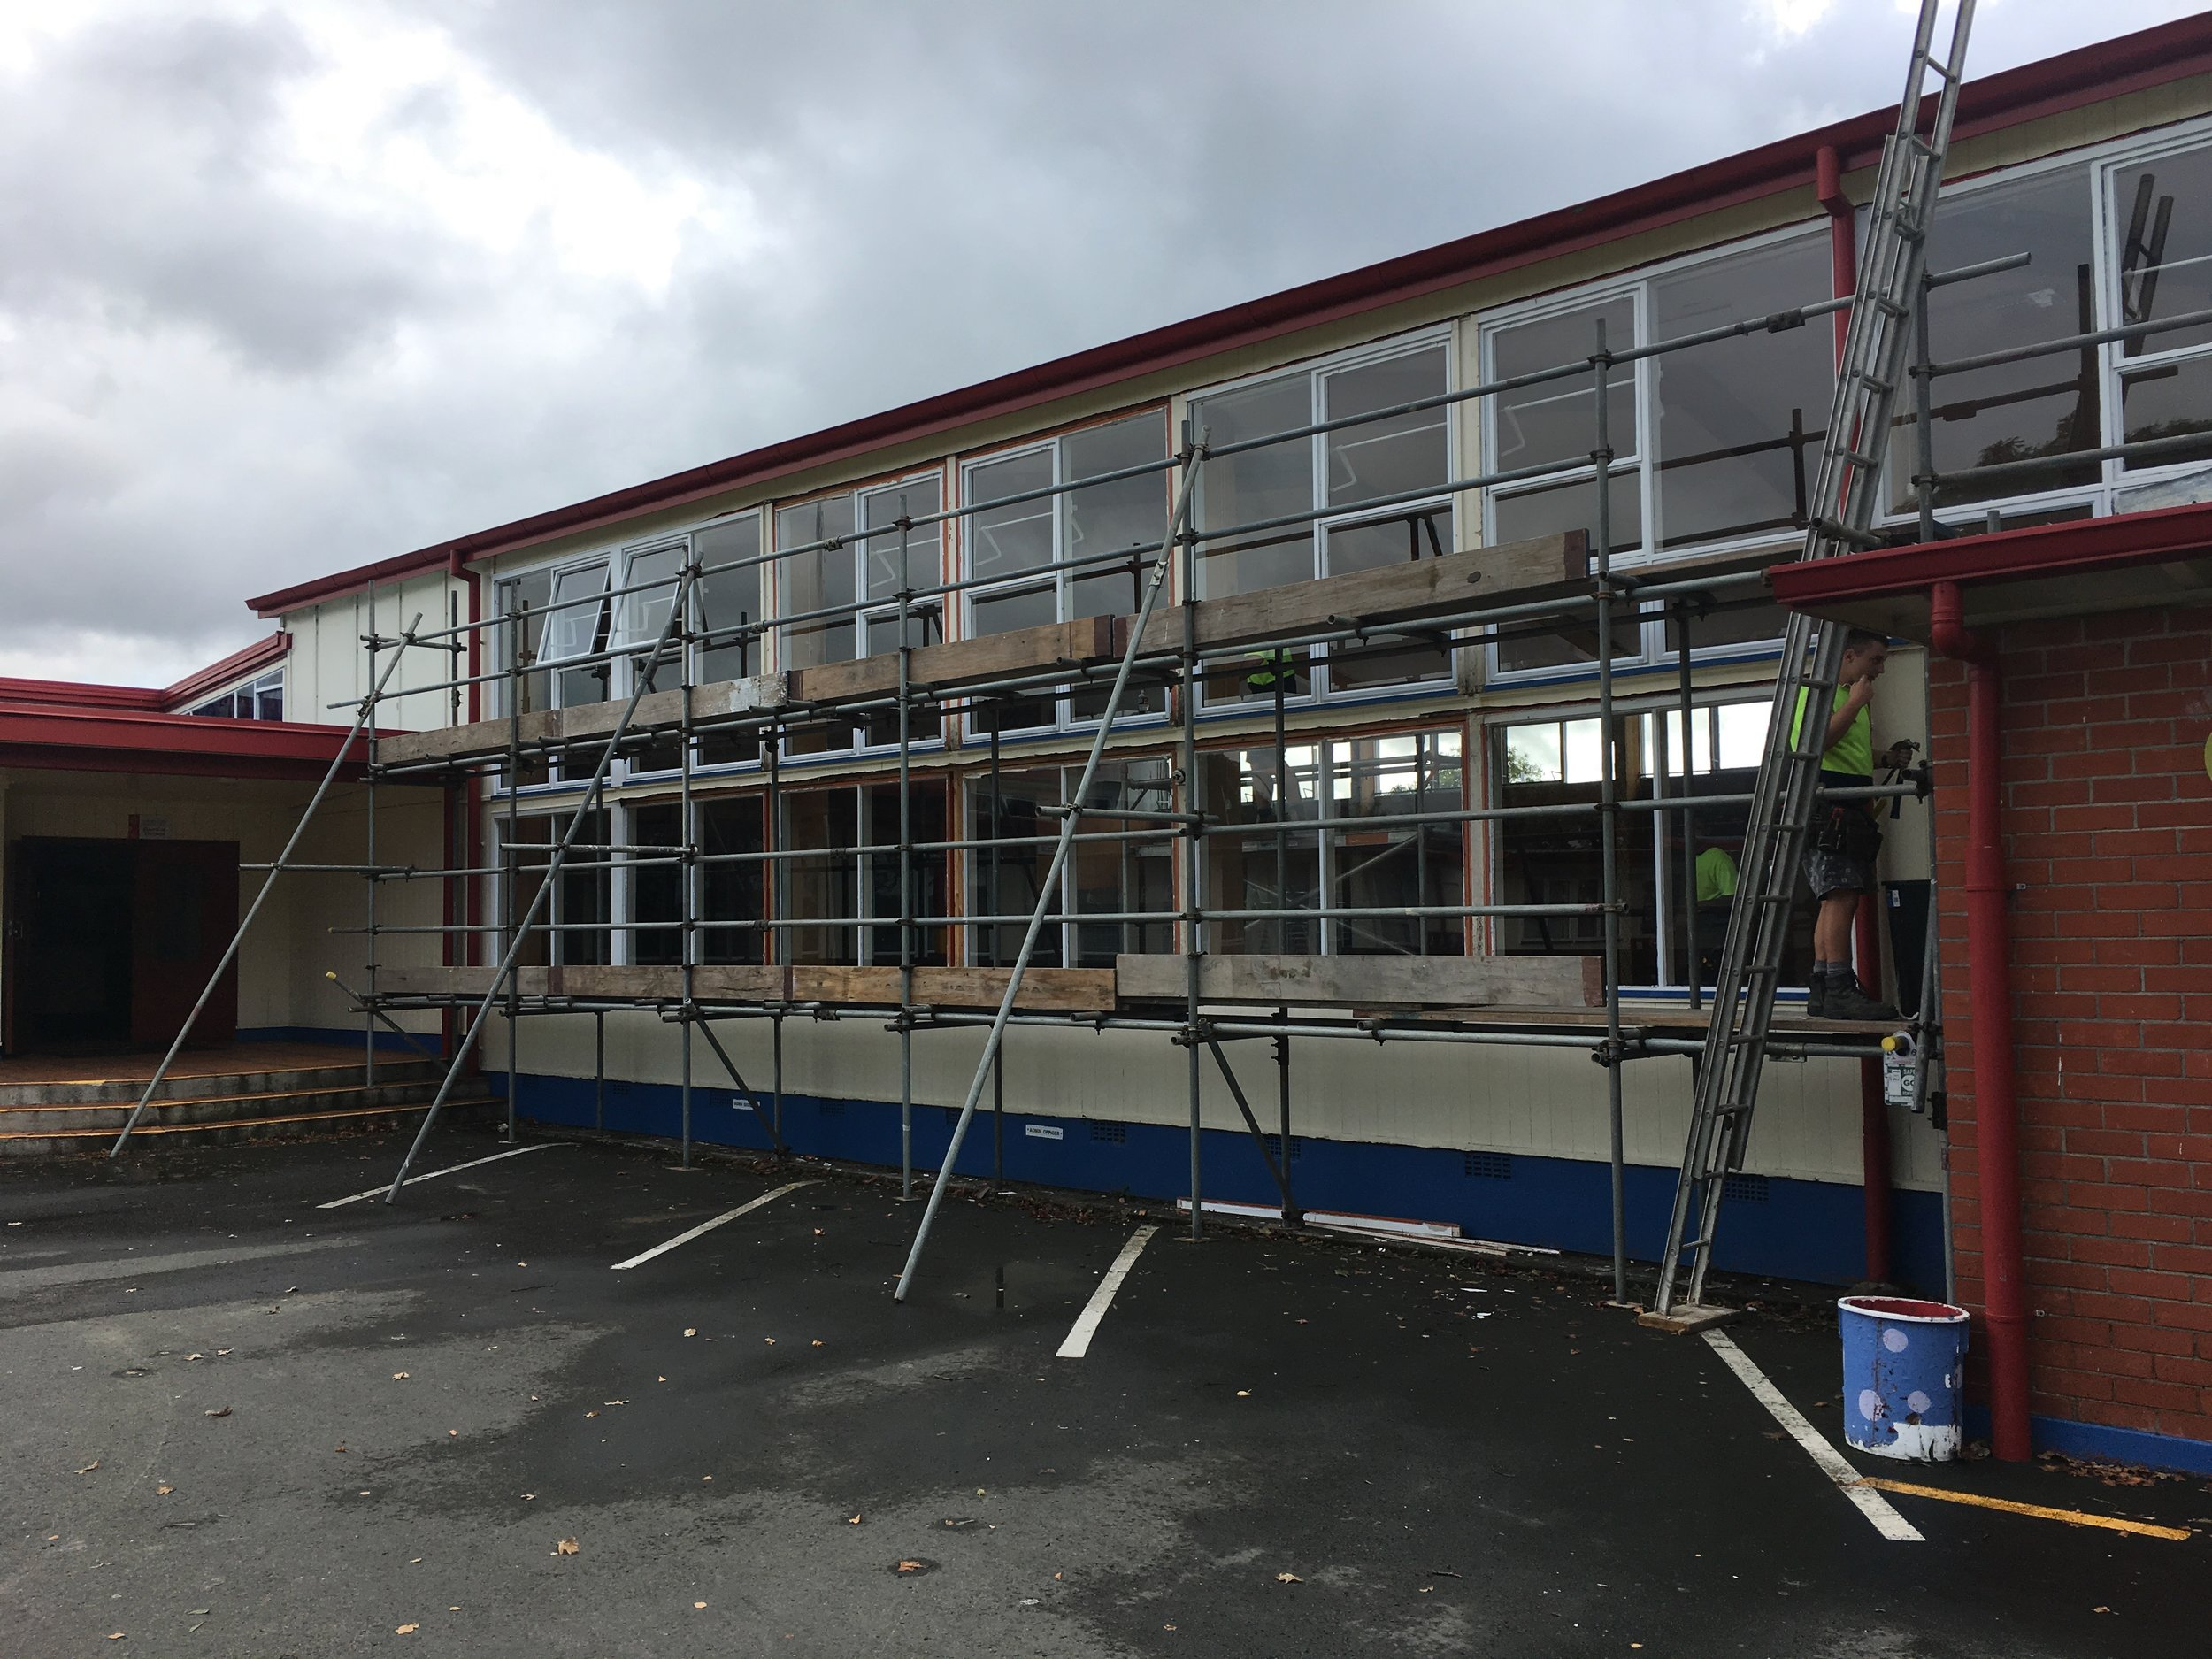 GISBORNE GIRLS HIGH SCHOOL — ASSEMBLY HALL SEISMIC UPGRADE